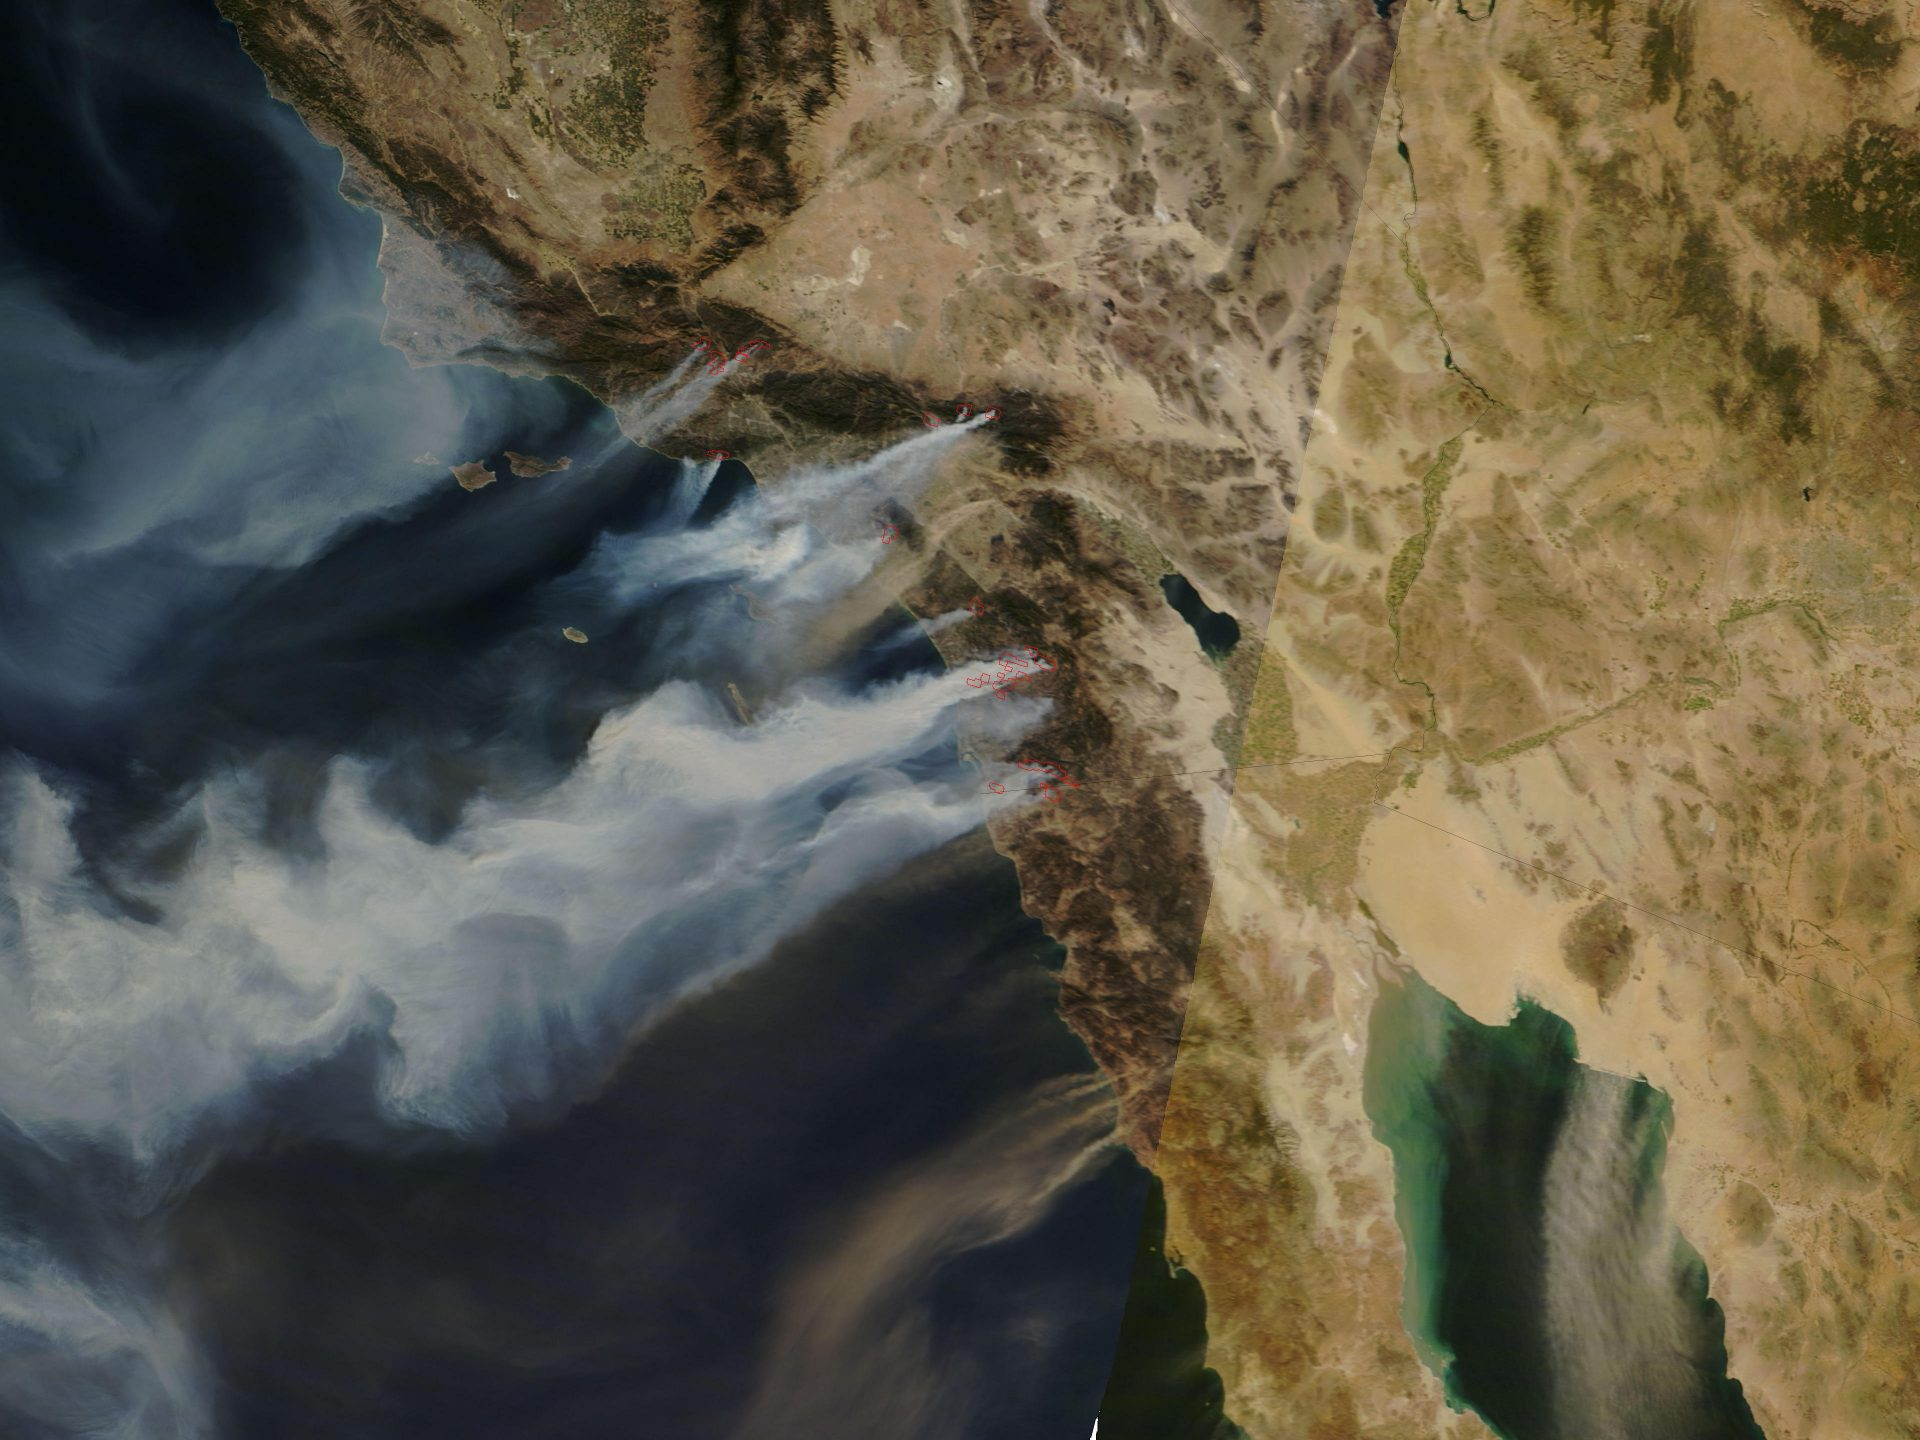 """""""Santa Ana winds in California expands fires and spreads smoke over hundreds of miles, as in this October 2007 satellite image shows.""""(Image: Nasa [Public domain], via Wikimedia Commons)"""